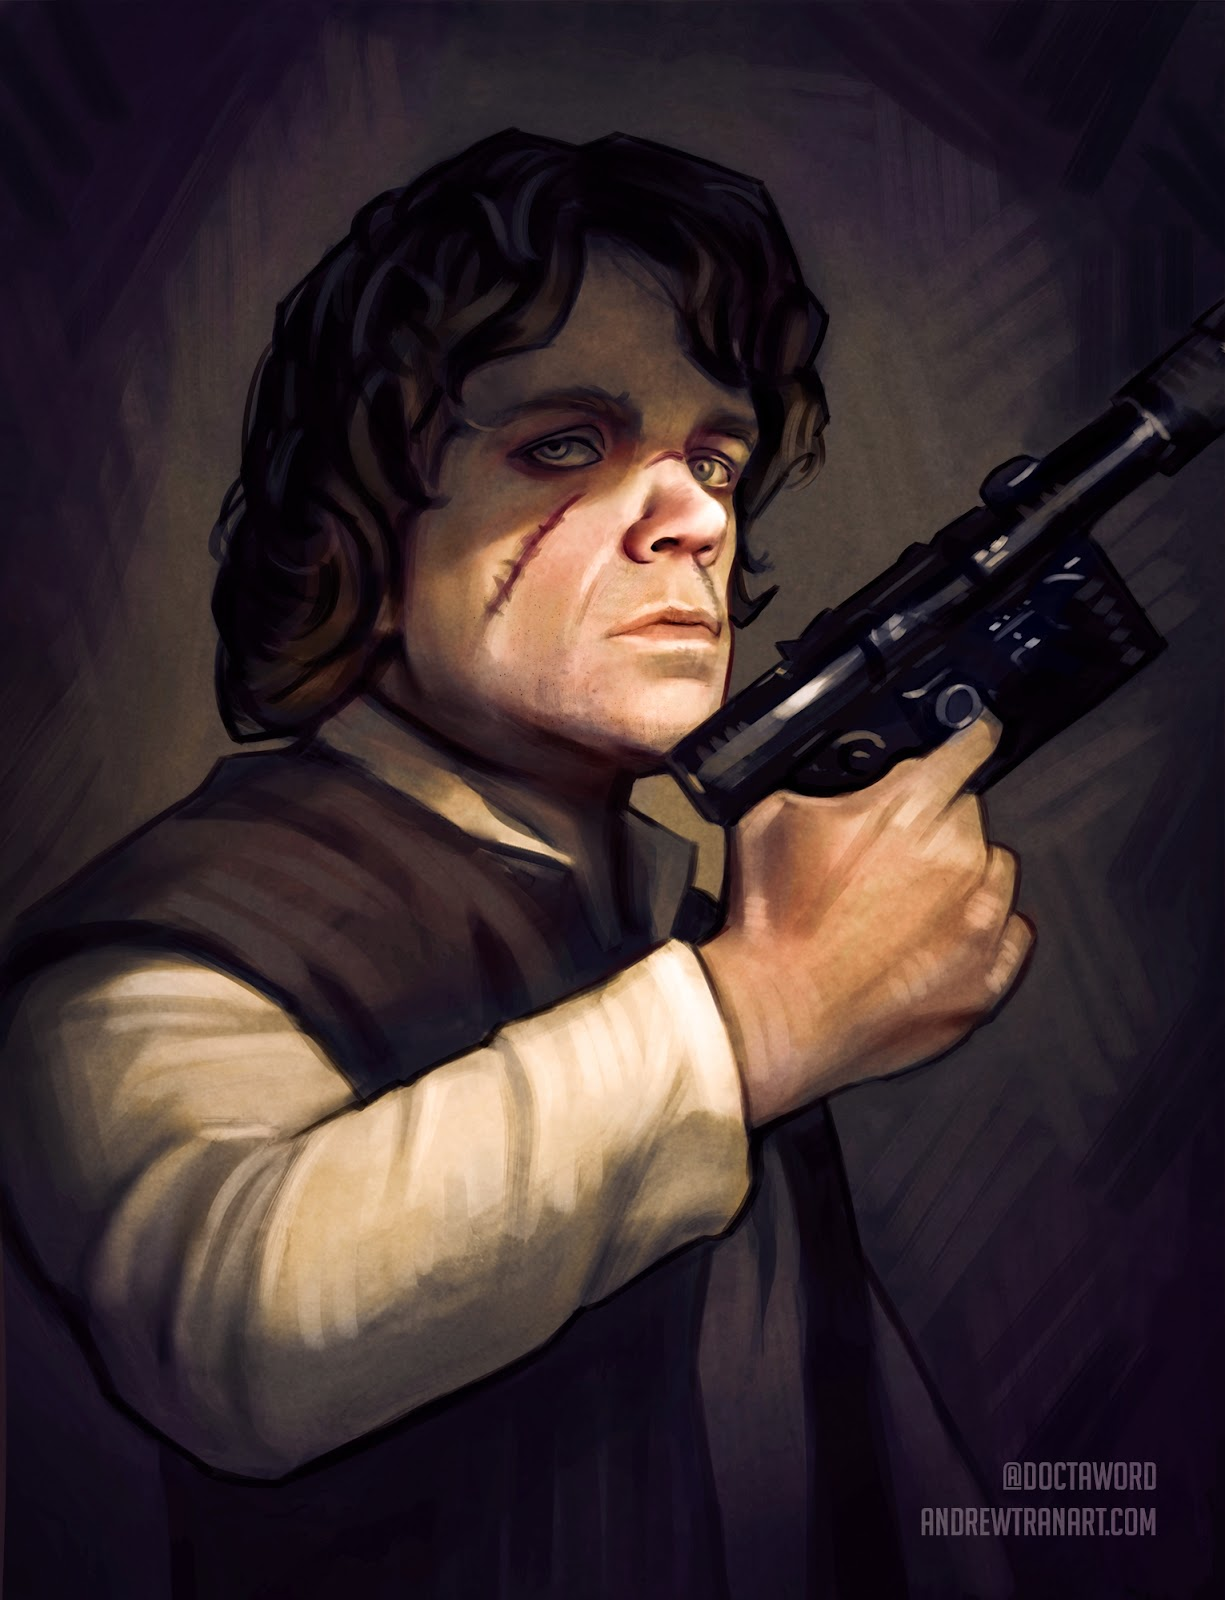 02-Tyrion-Lannister-Peter-Dinklage-Andrew-D-Tran-Doctaword-Star-Wars-and-Game-of-Thrones-Mashup-www-designstack-co